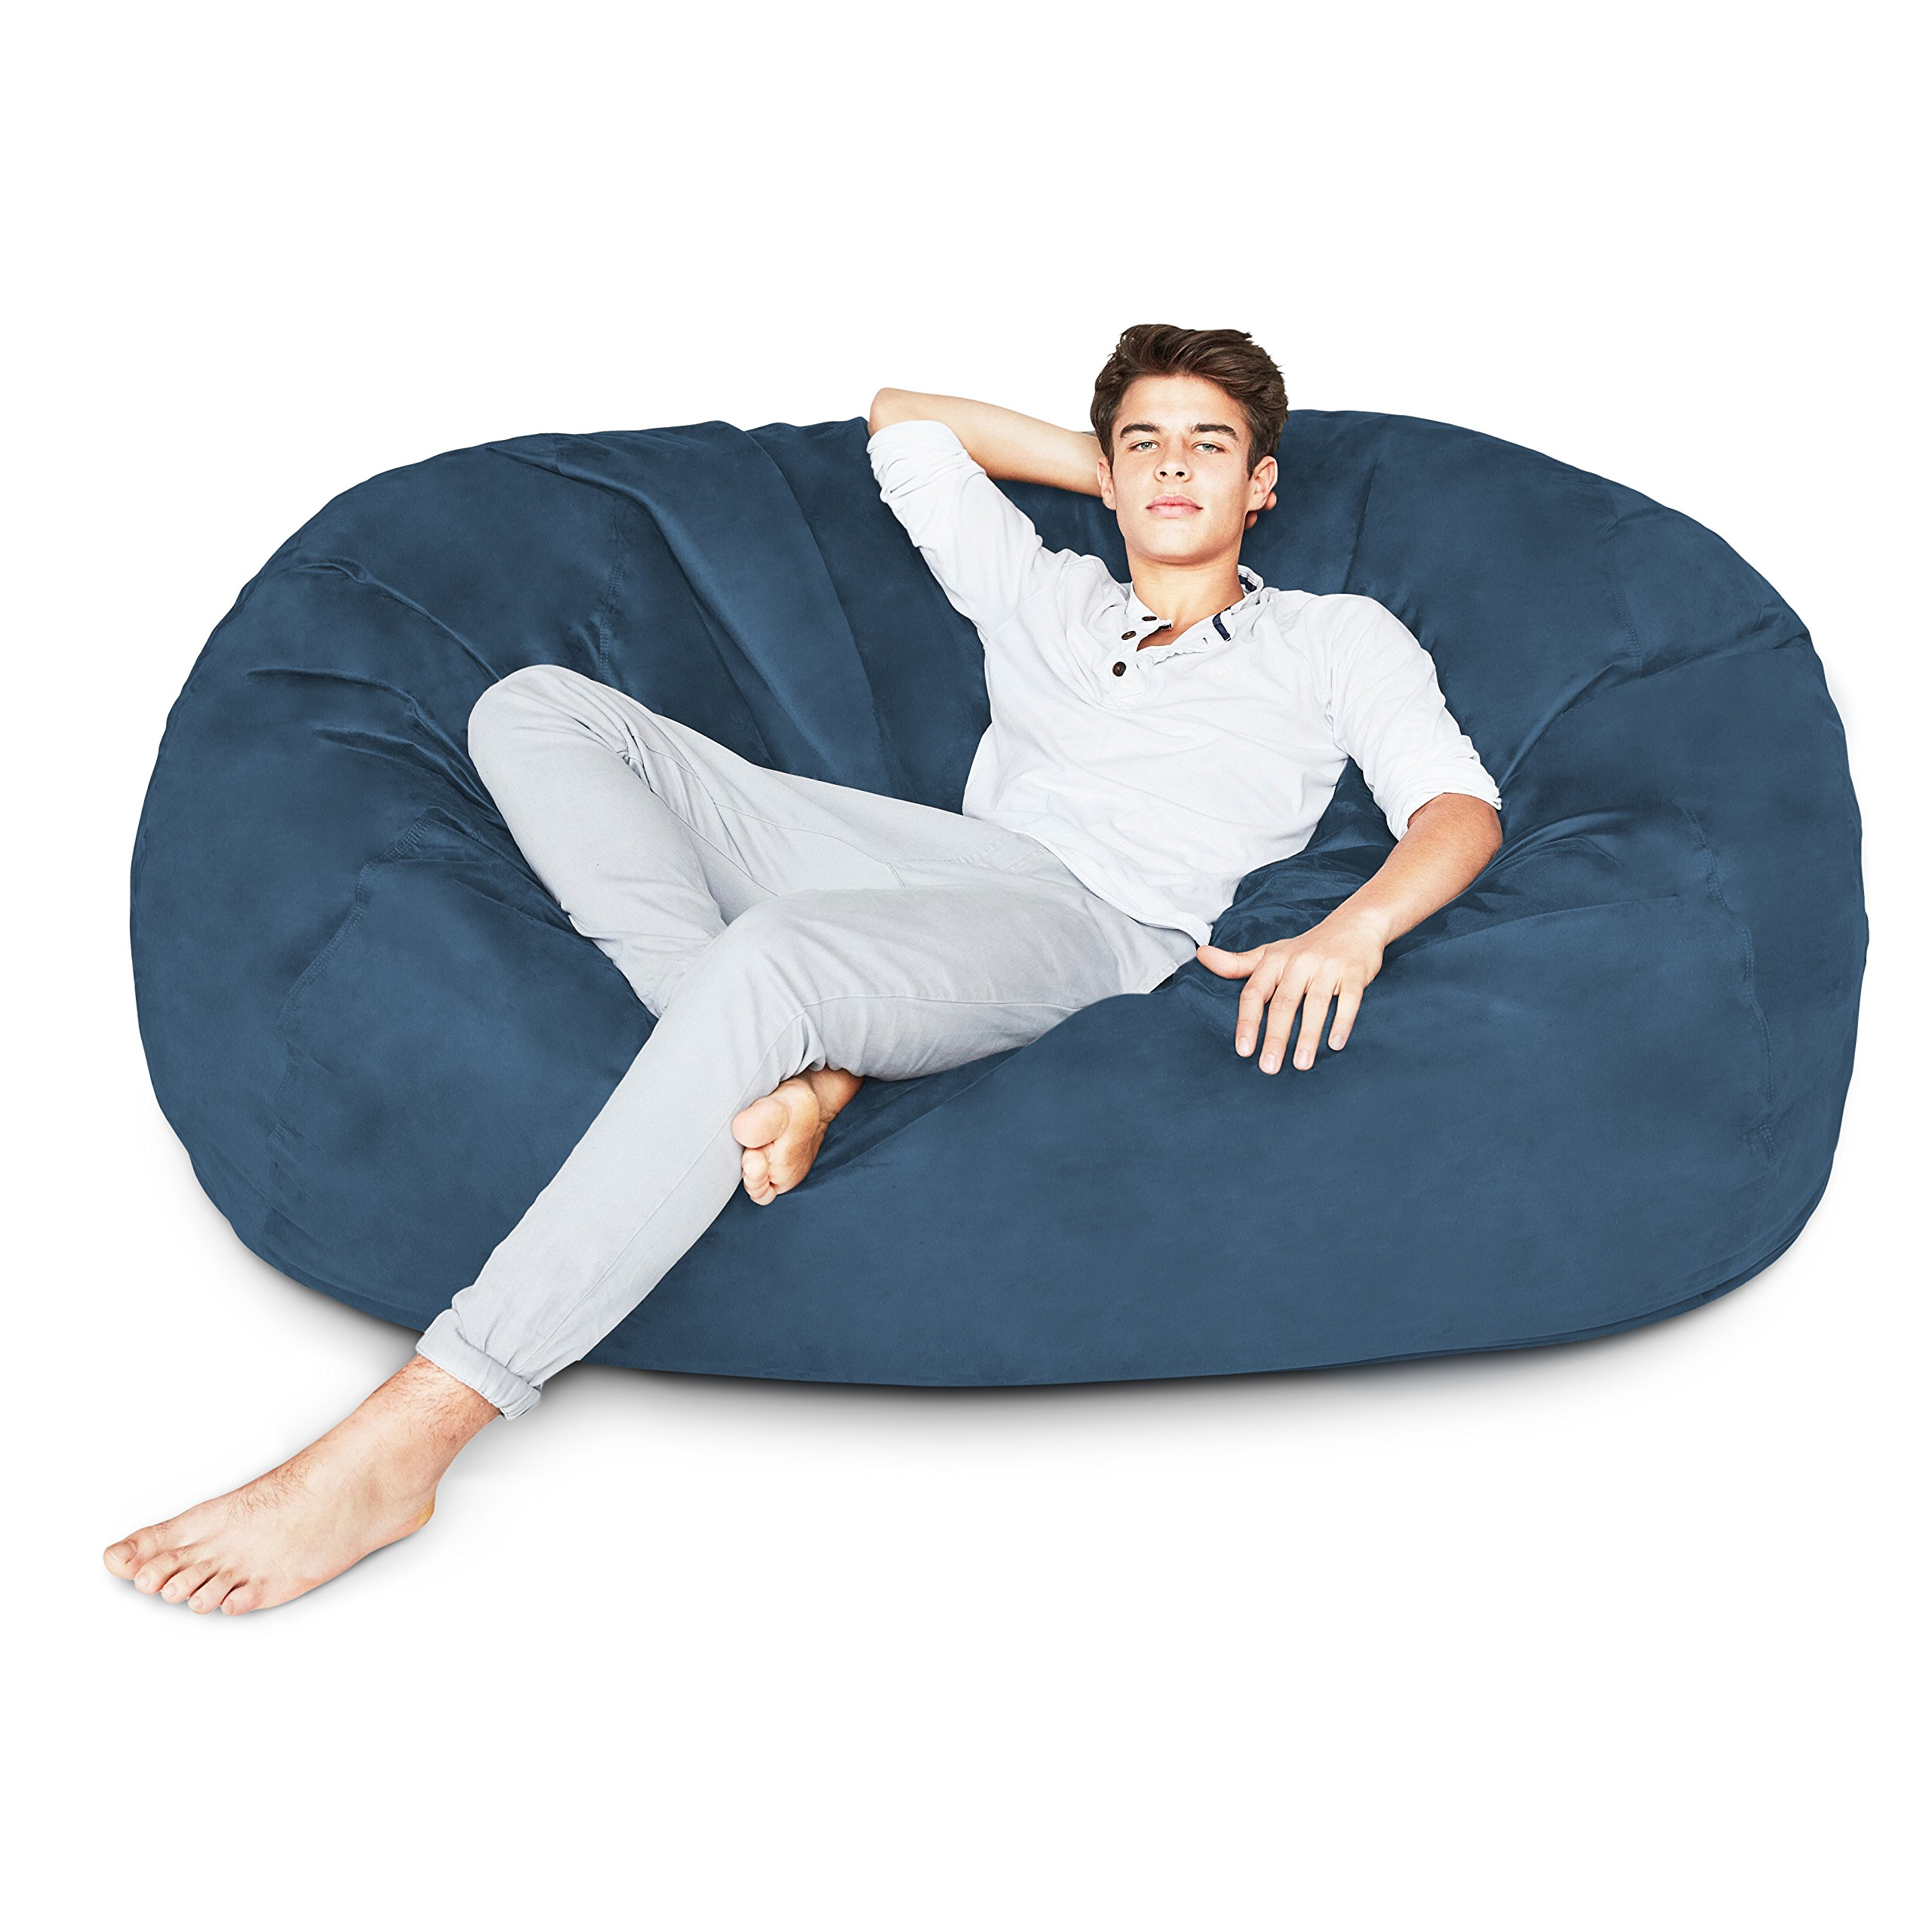 Lumaland Luxury 6-Foot Bean Bag Chair with Microsuede Cover Navy Blue, Machine Washable Big Size Sofa and Giant Lounger Furniture for Kids, Teens and Adults